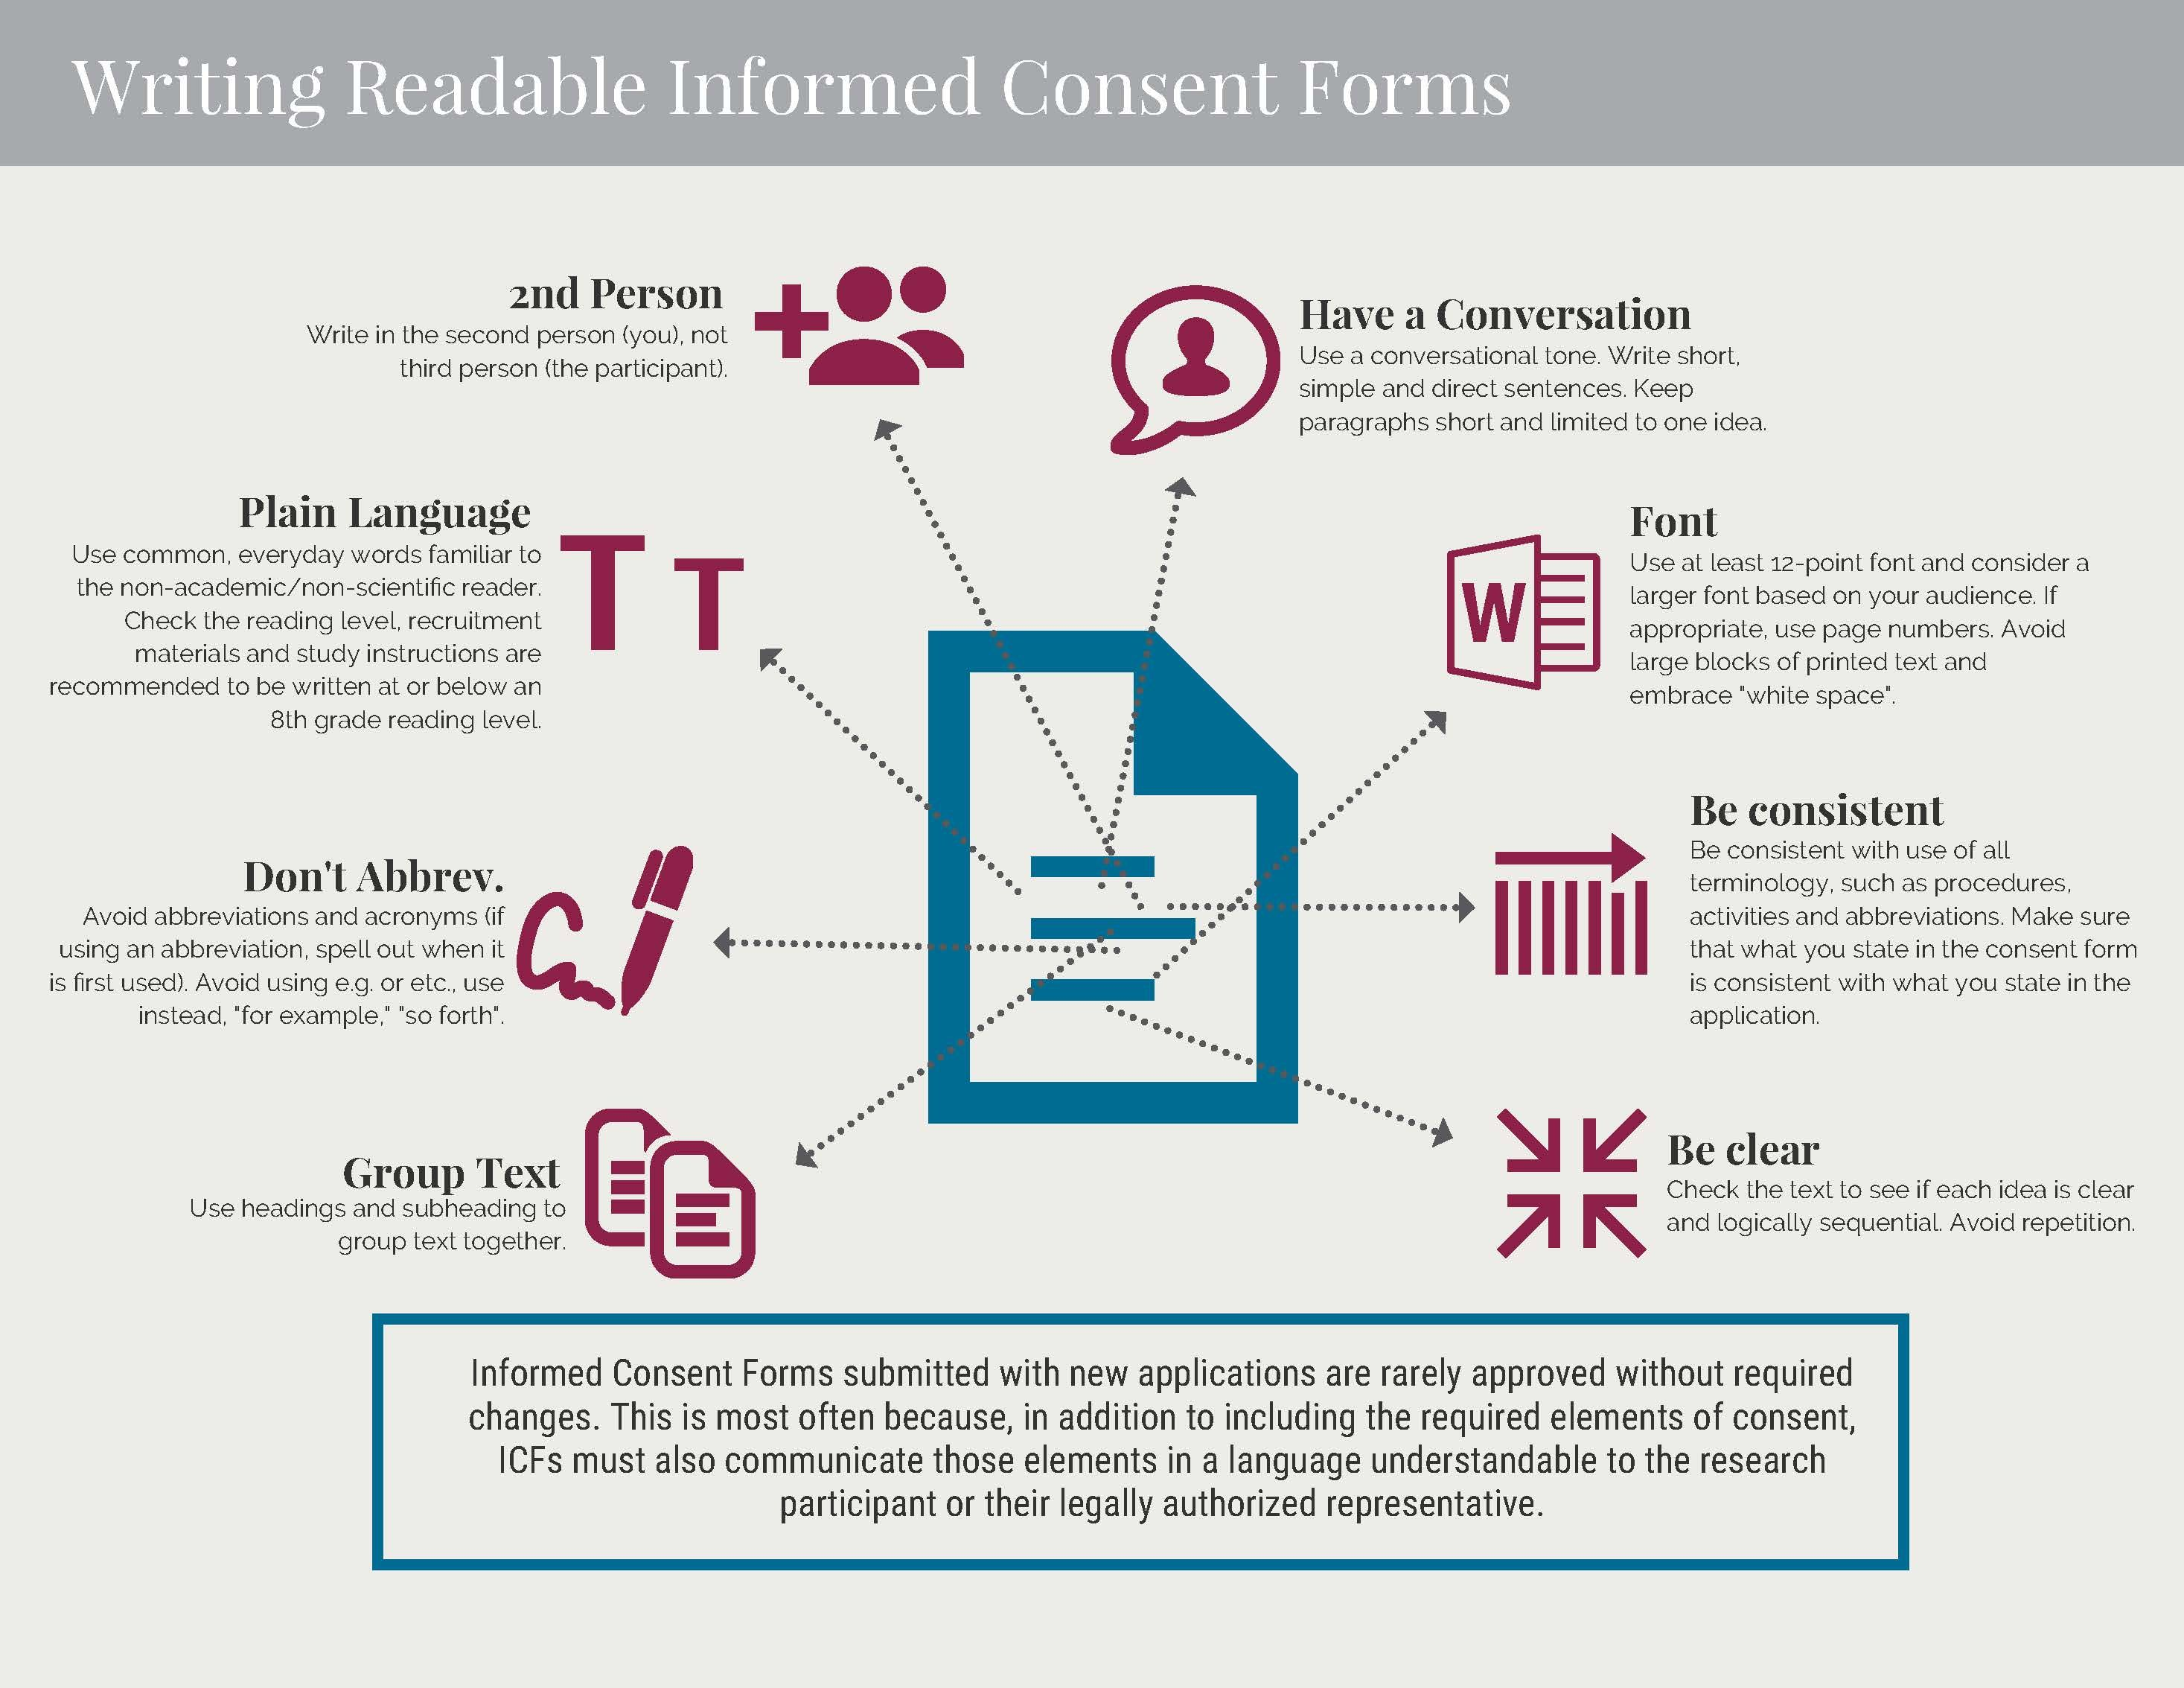 Informed Consent Form Research Study Google Search Informed Consent Consent Forms This Or That Questions